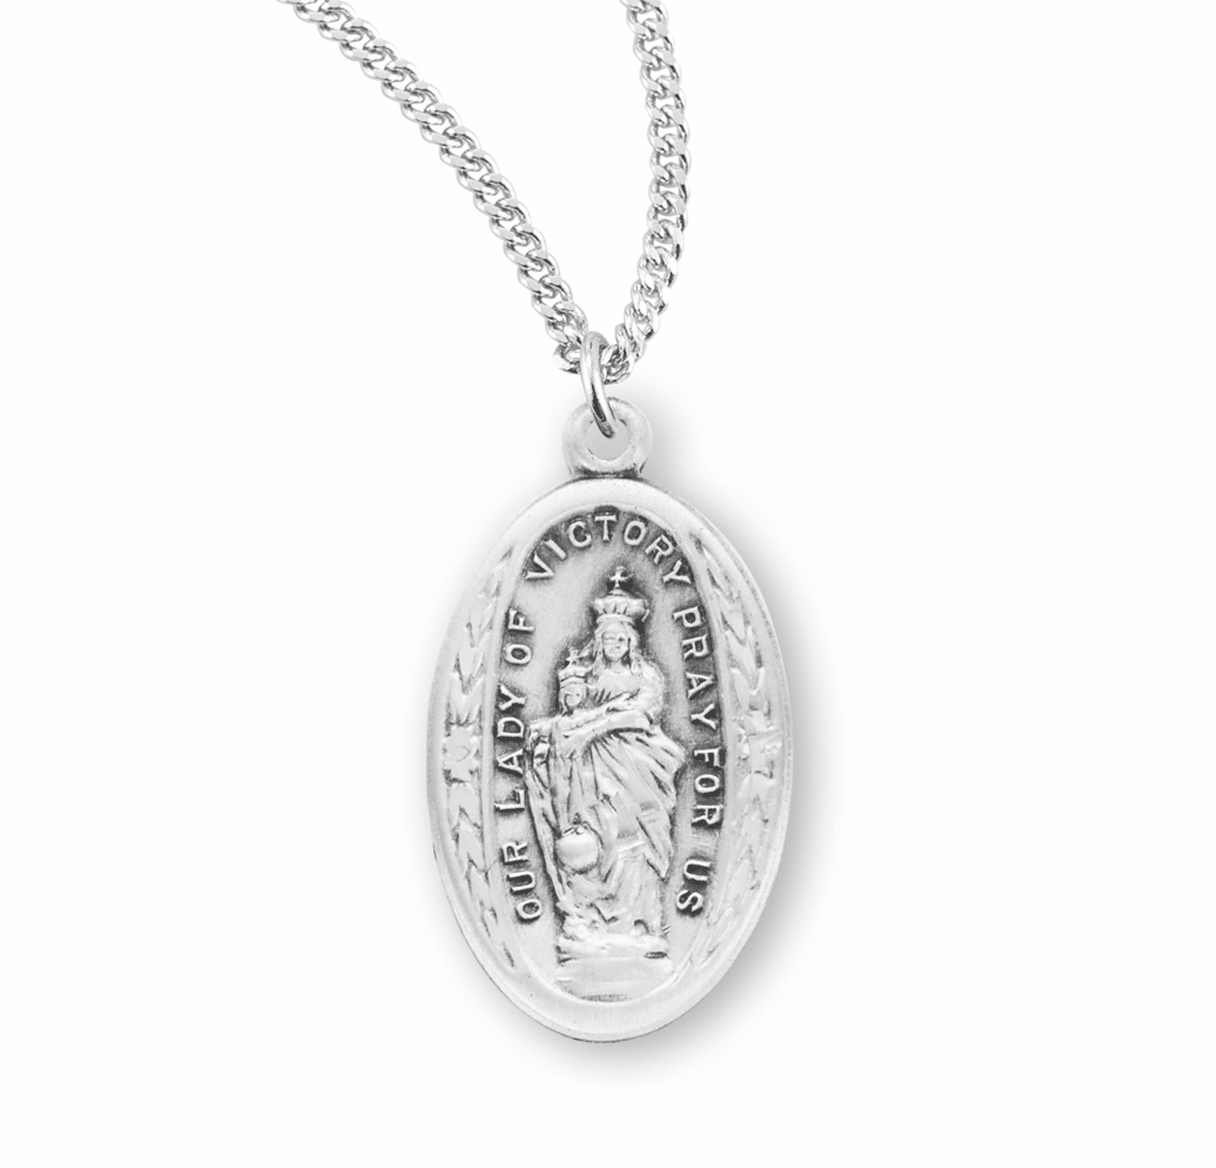 HMH Religious Our Lady of Victory Sterling Silver Medal Necklace w/Chain